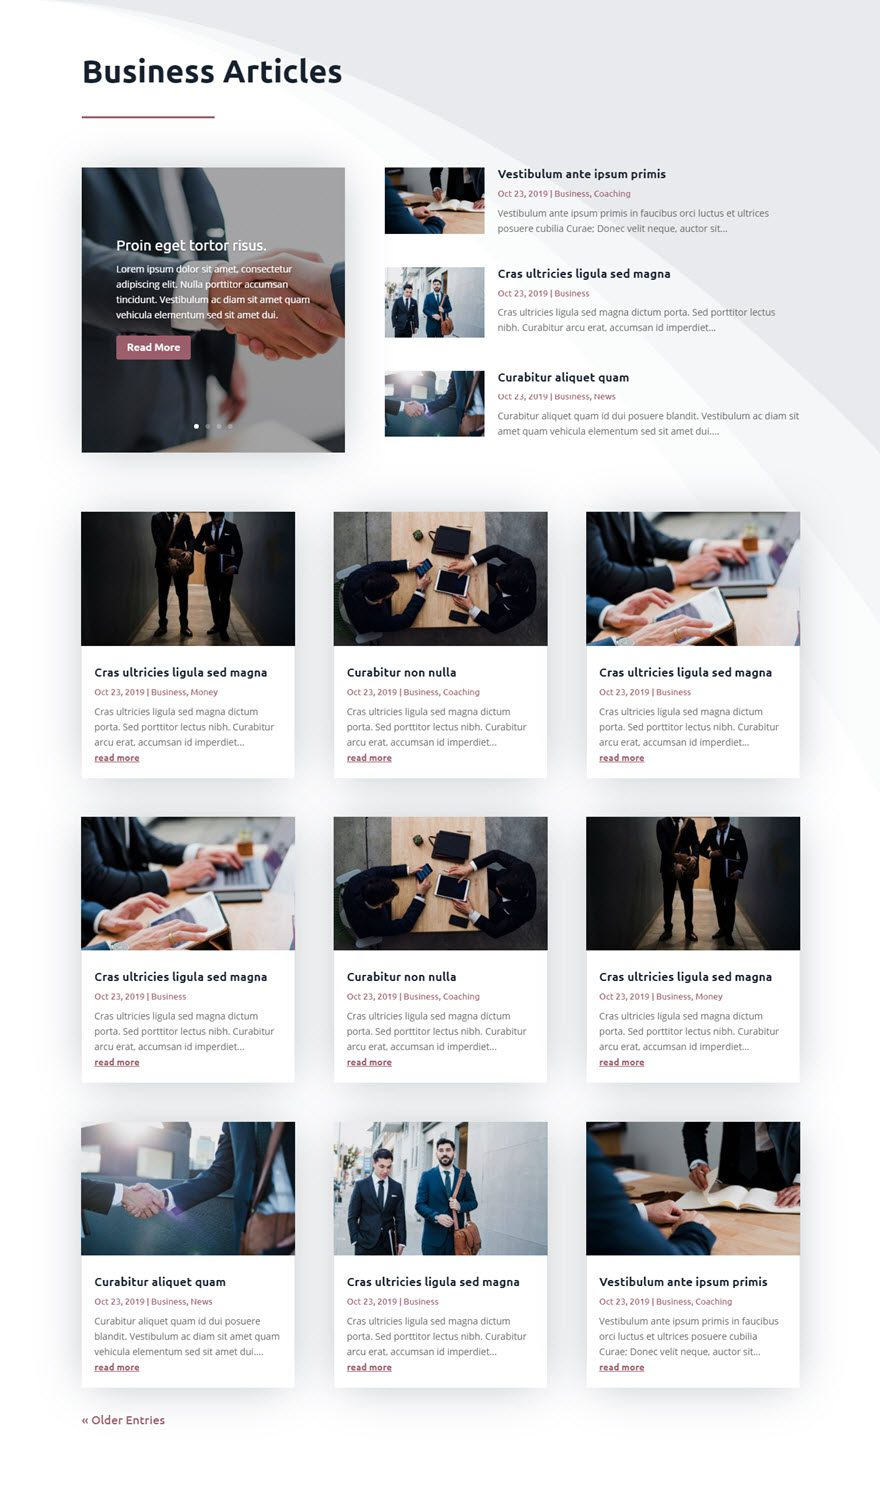 How to Create a Category Page Template for your Blog Using the Divi Theme Builder